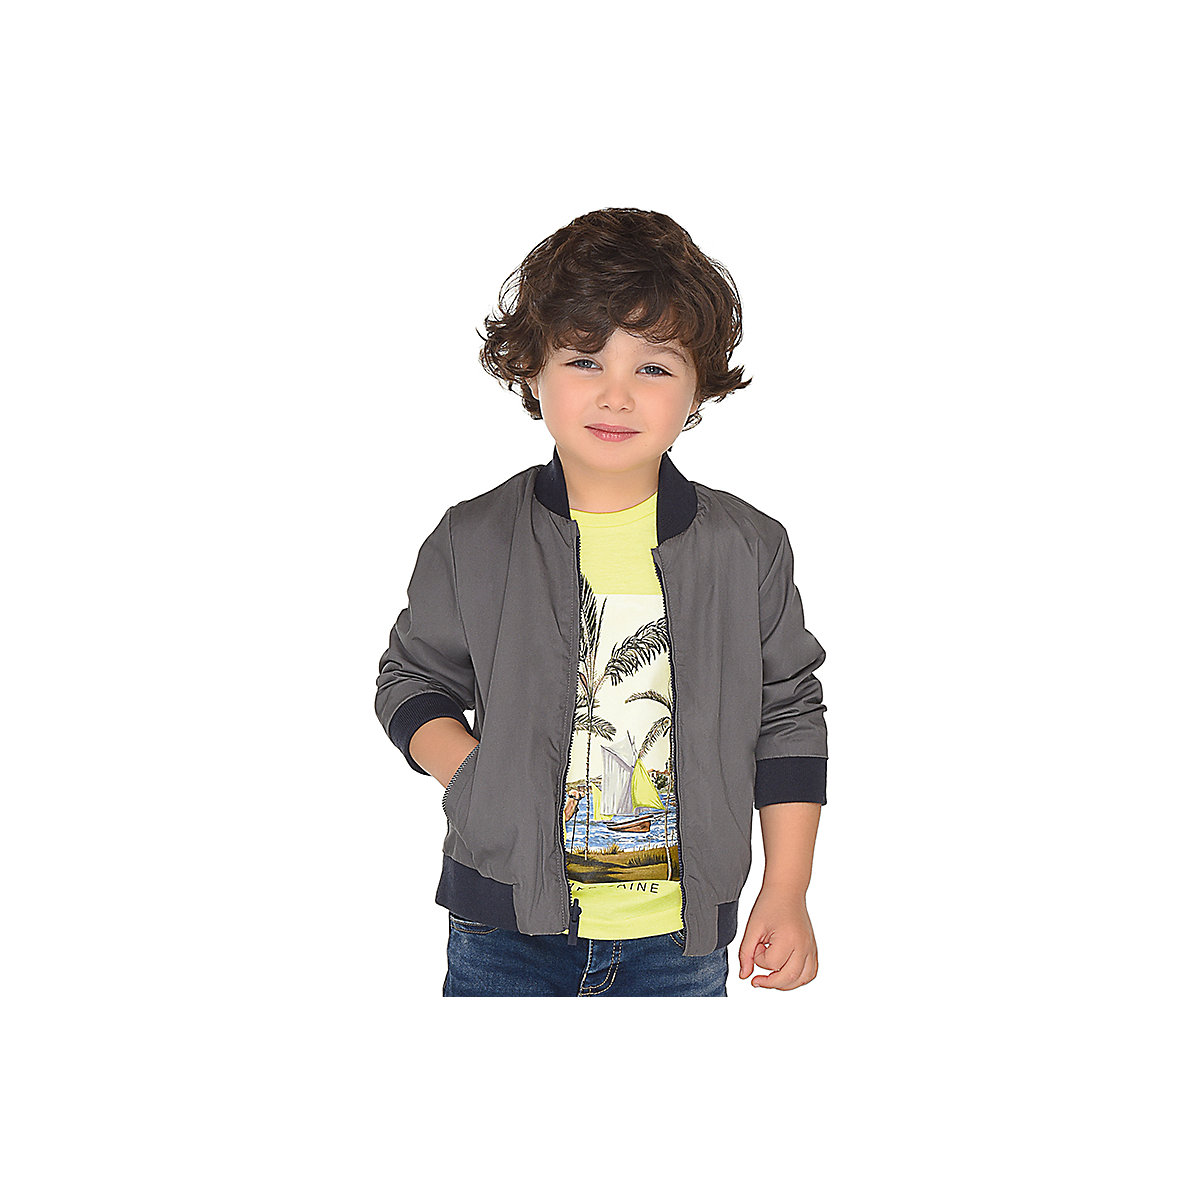 Фото - Mayoral Jackets & Coats 10690953 jacket for boys coat baby clothes children clothing outwear boy reima jackets 8688821 for boys polyester winter fur clothes boy